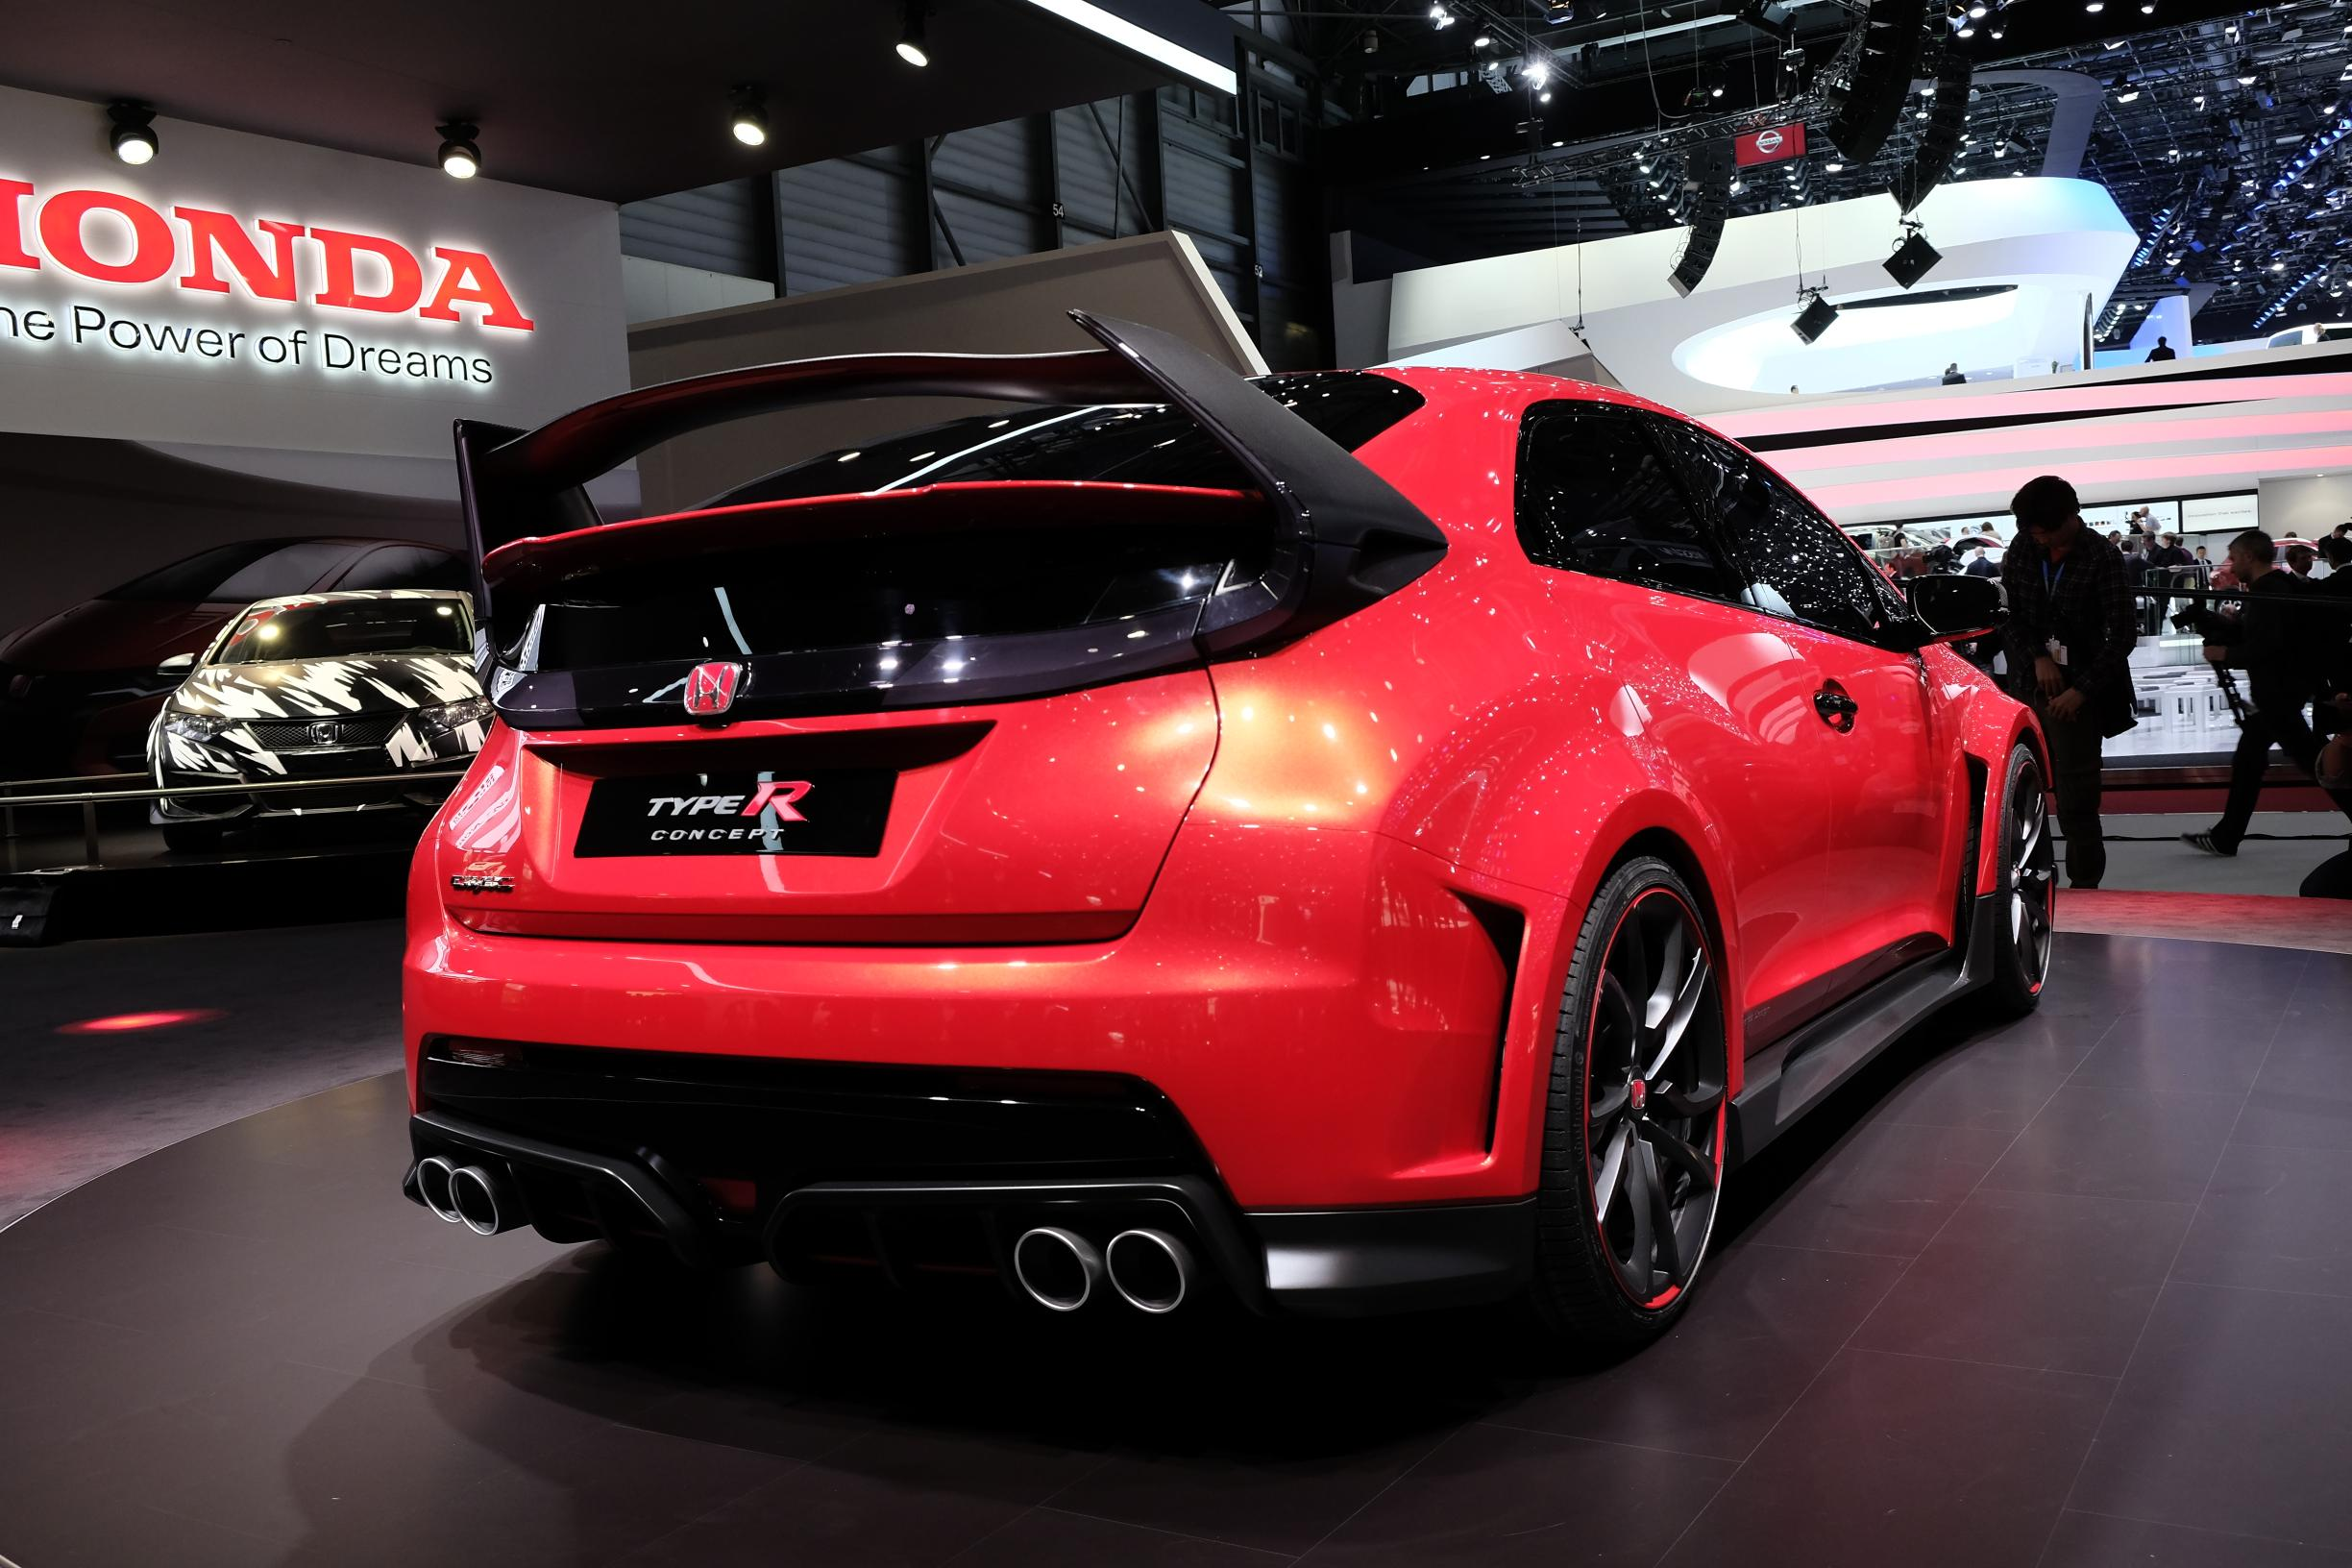 turbo e 280 cv honda civic type r concept promete desempenho extremo. Black Bedroom Furniture Sets. Home Design Ideas